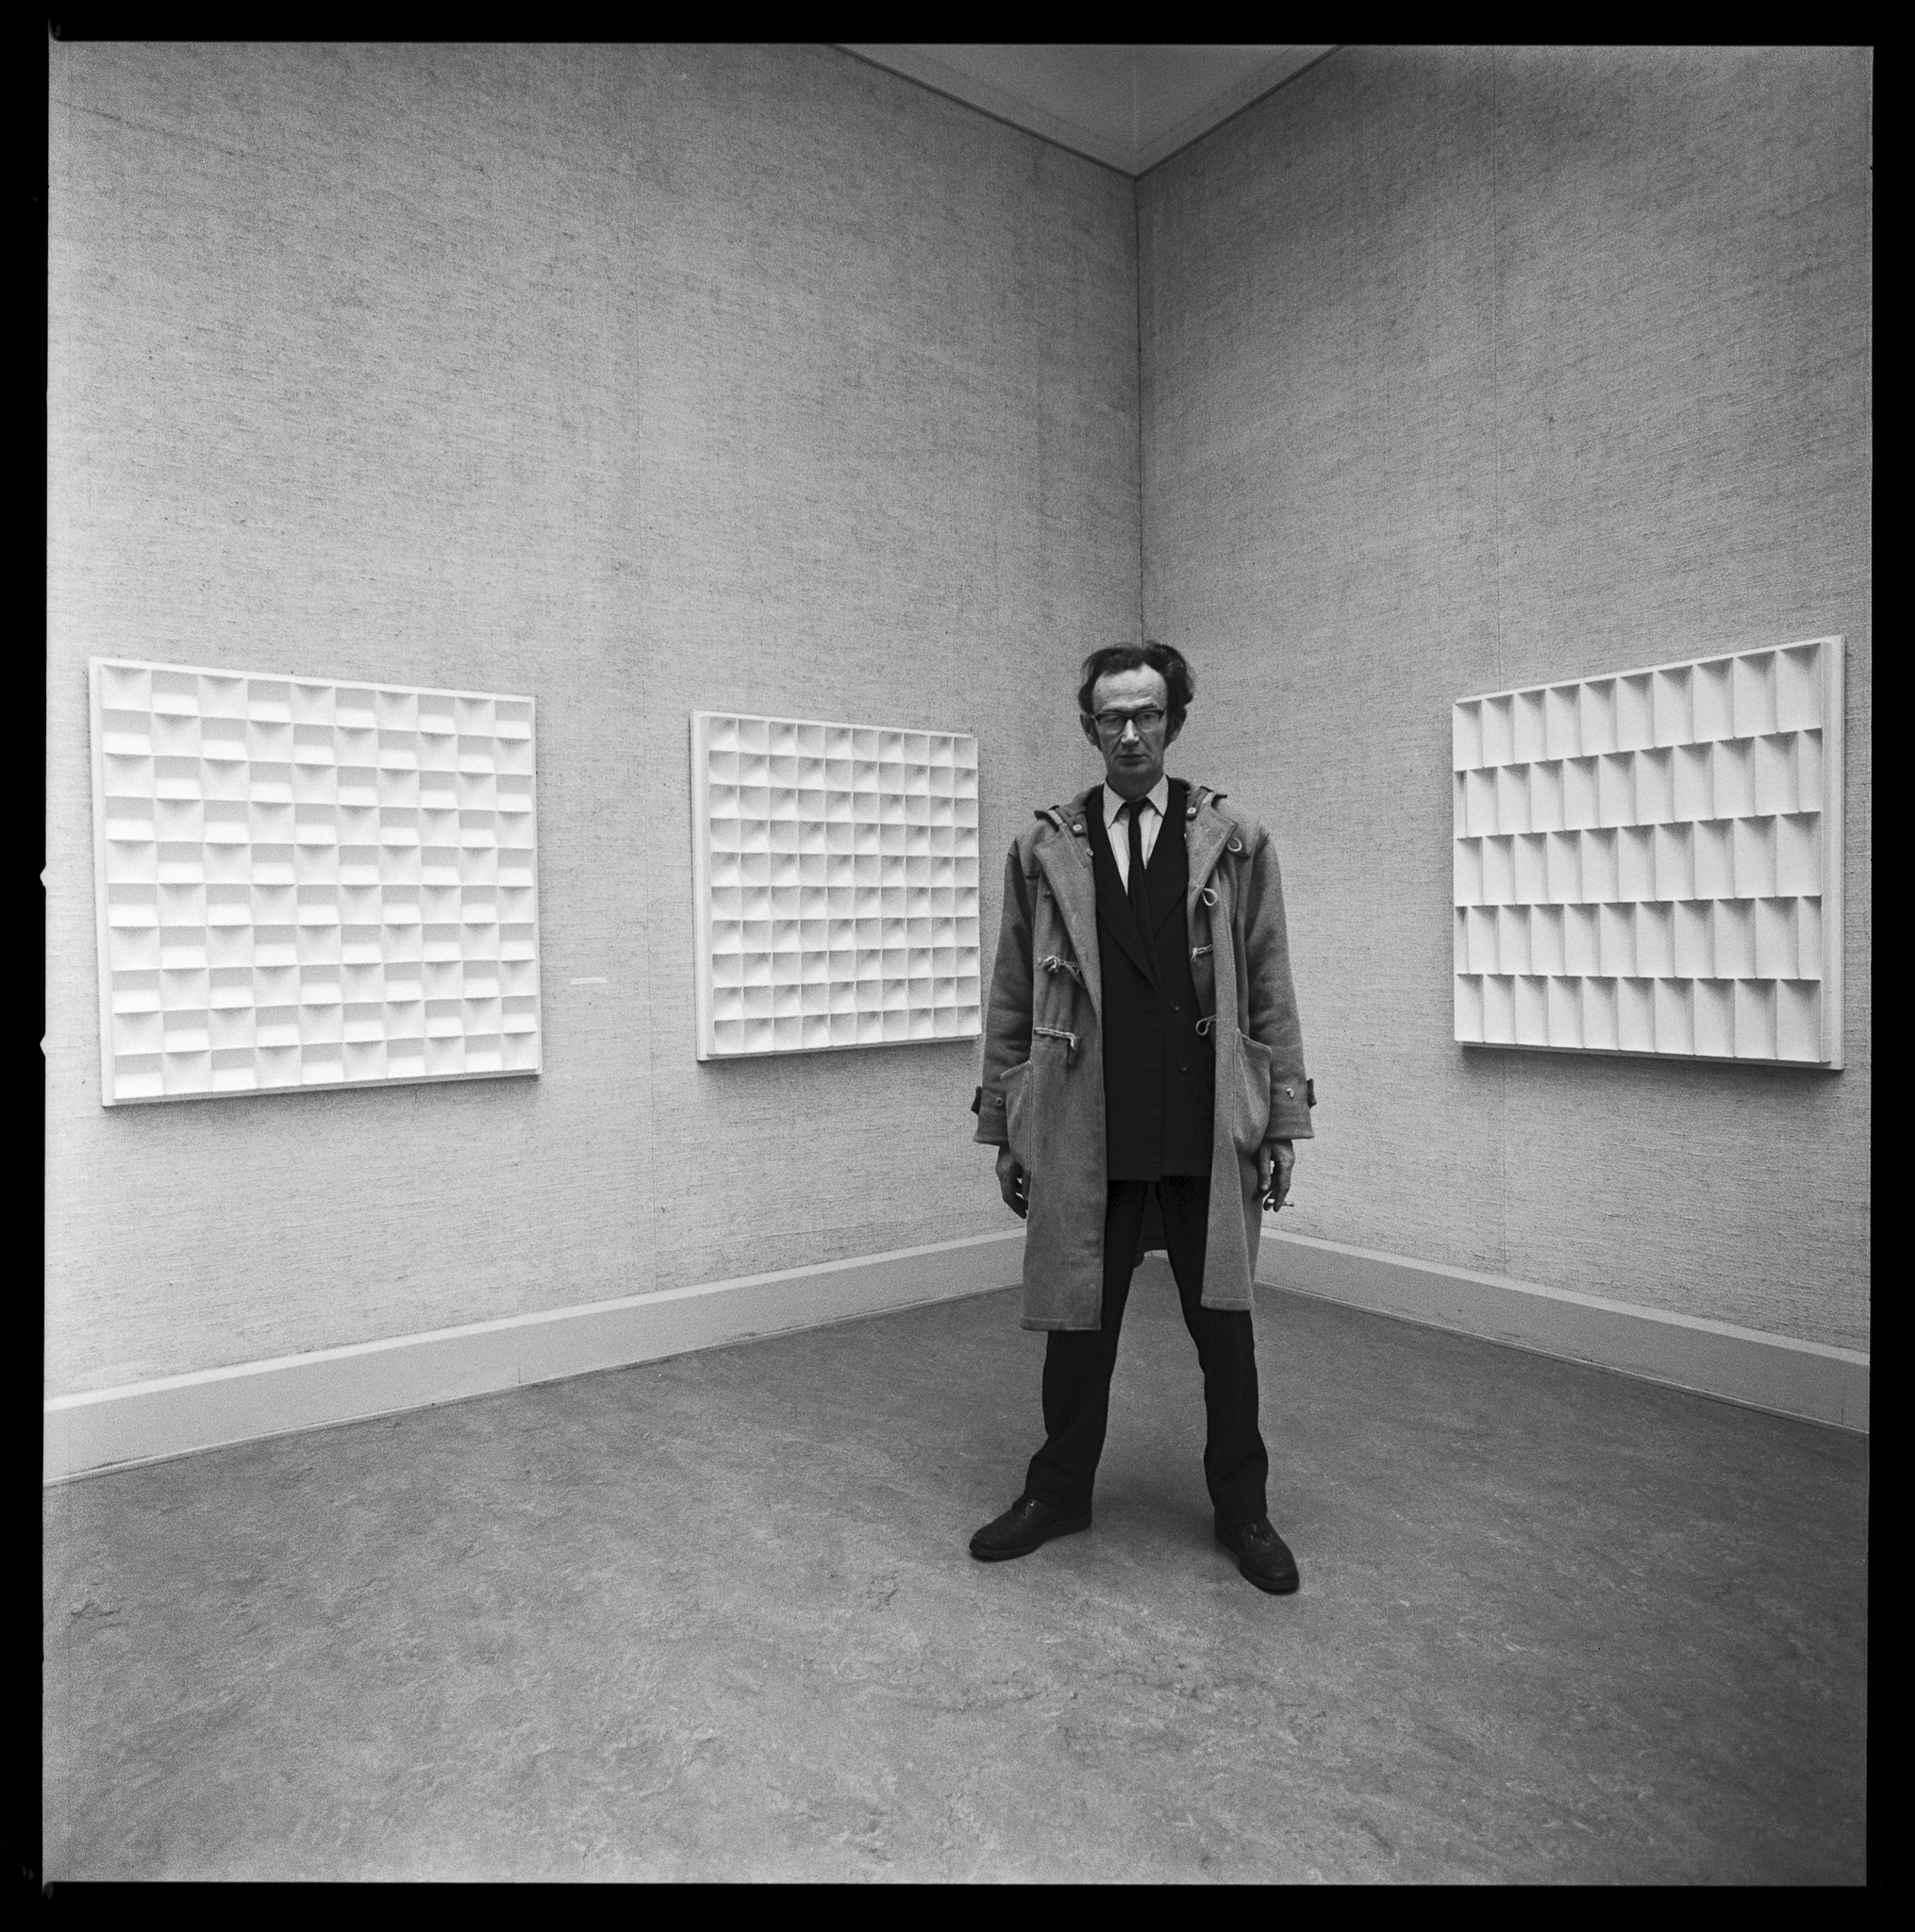 Jan Schoonhoven, by Lothar Wolleh